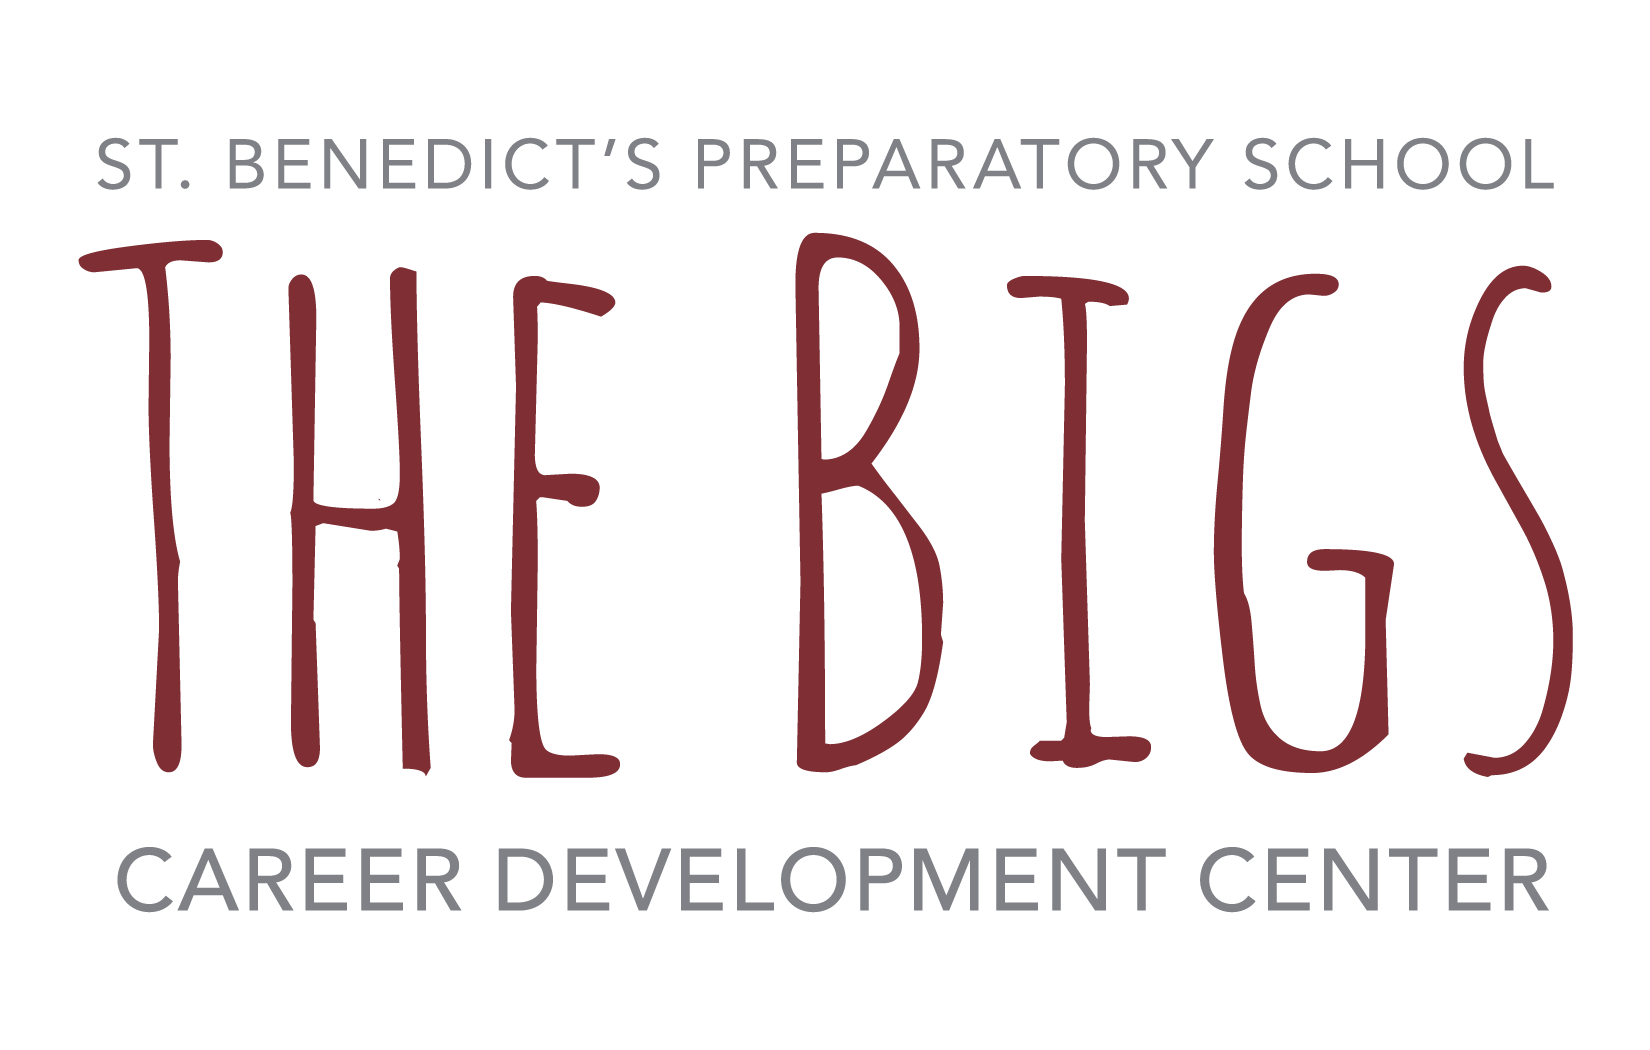 The BIGS Career Development Center logo